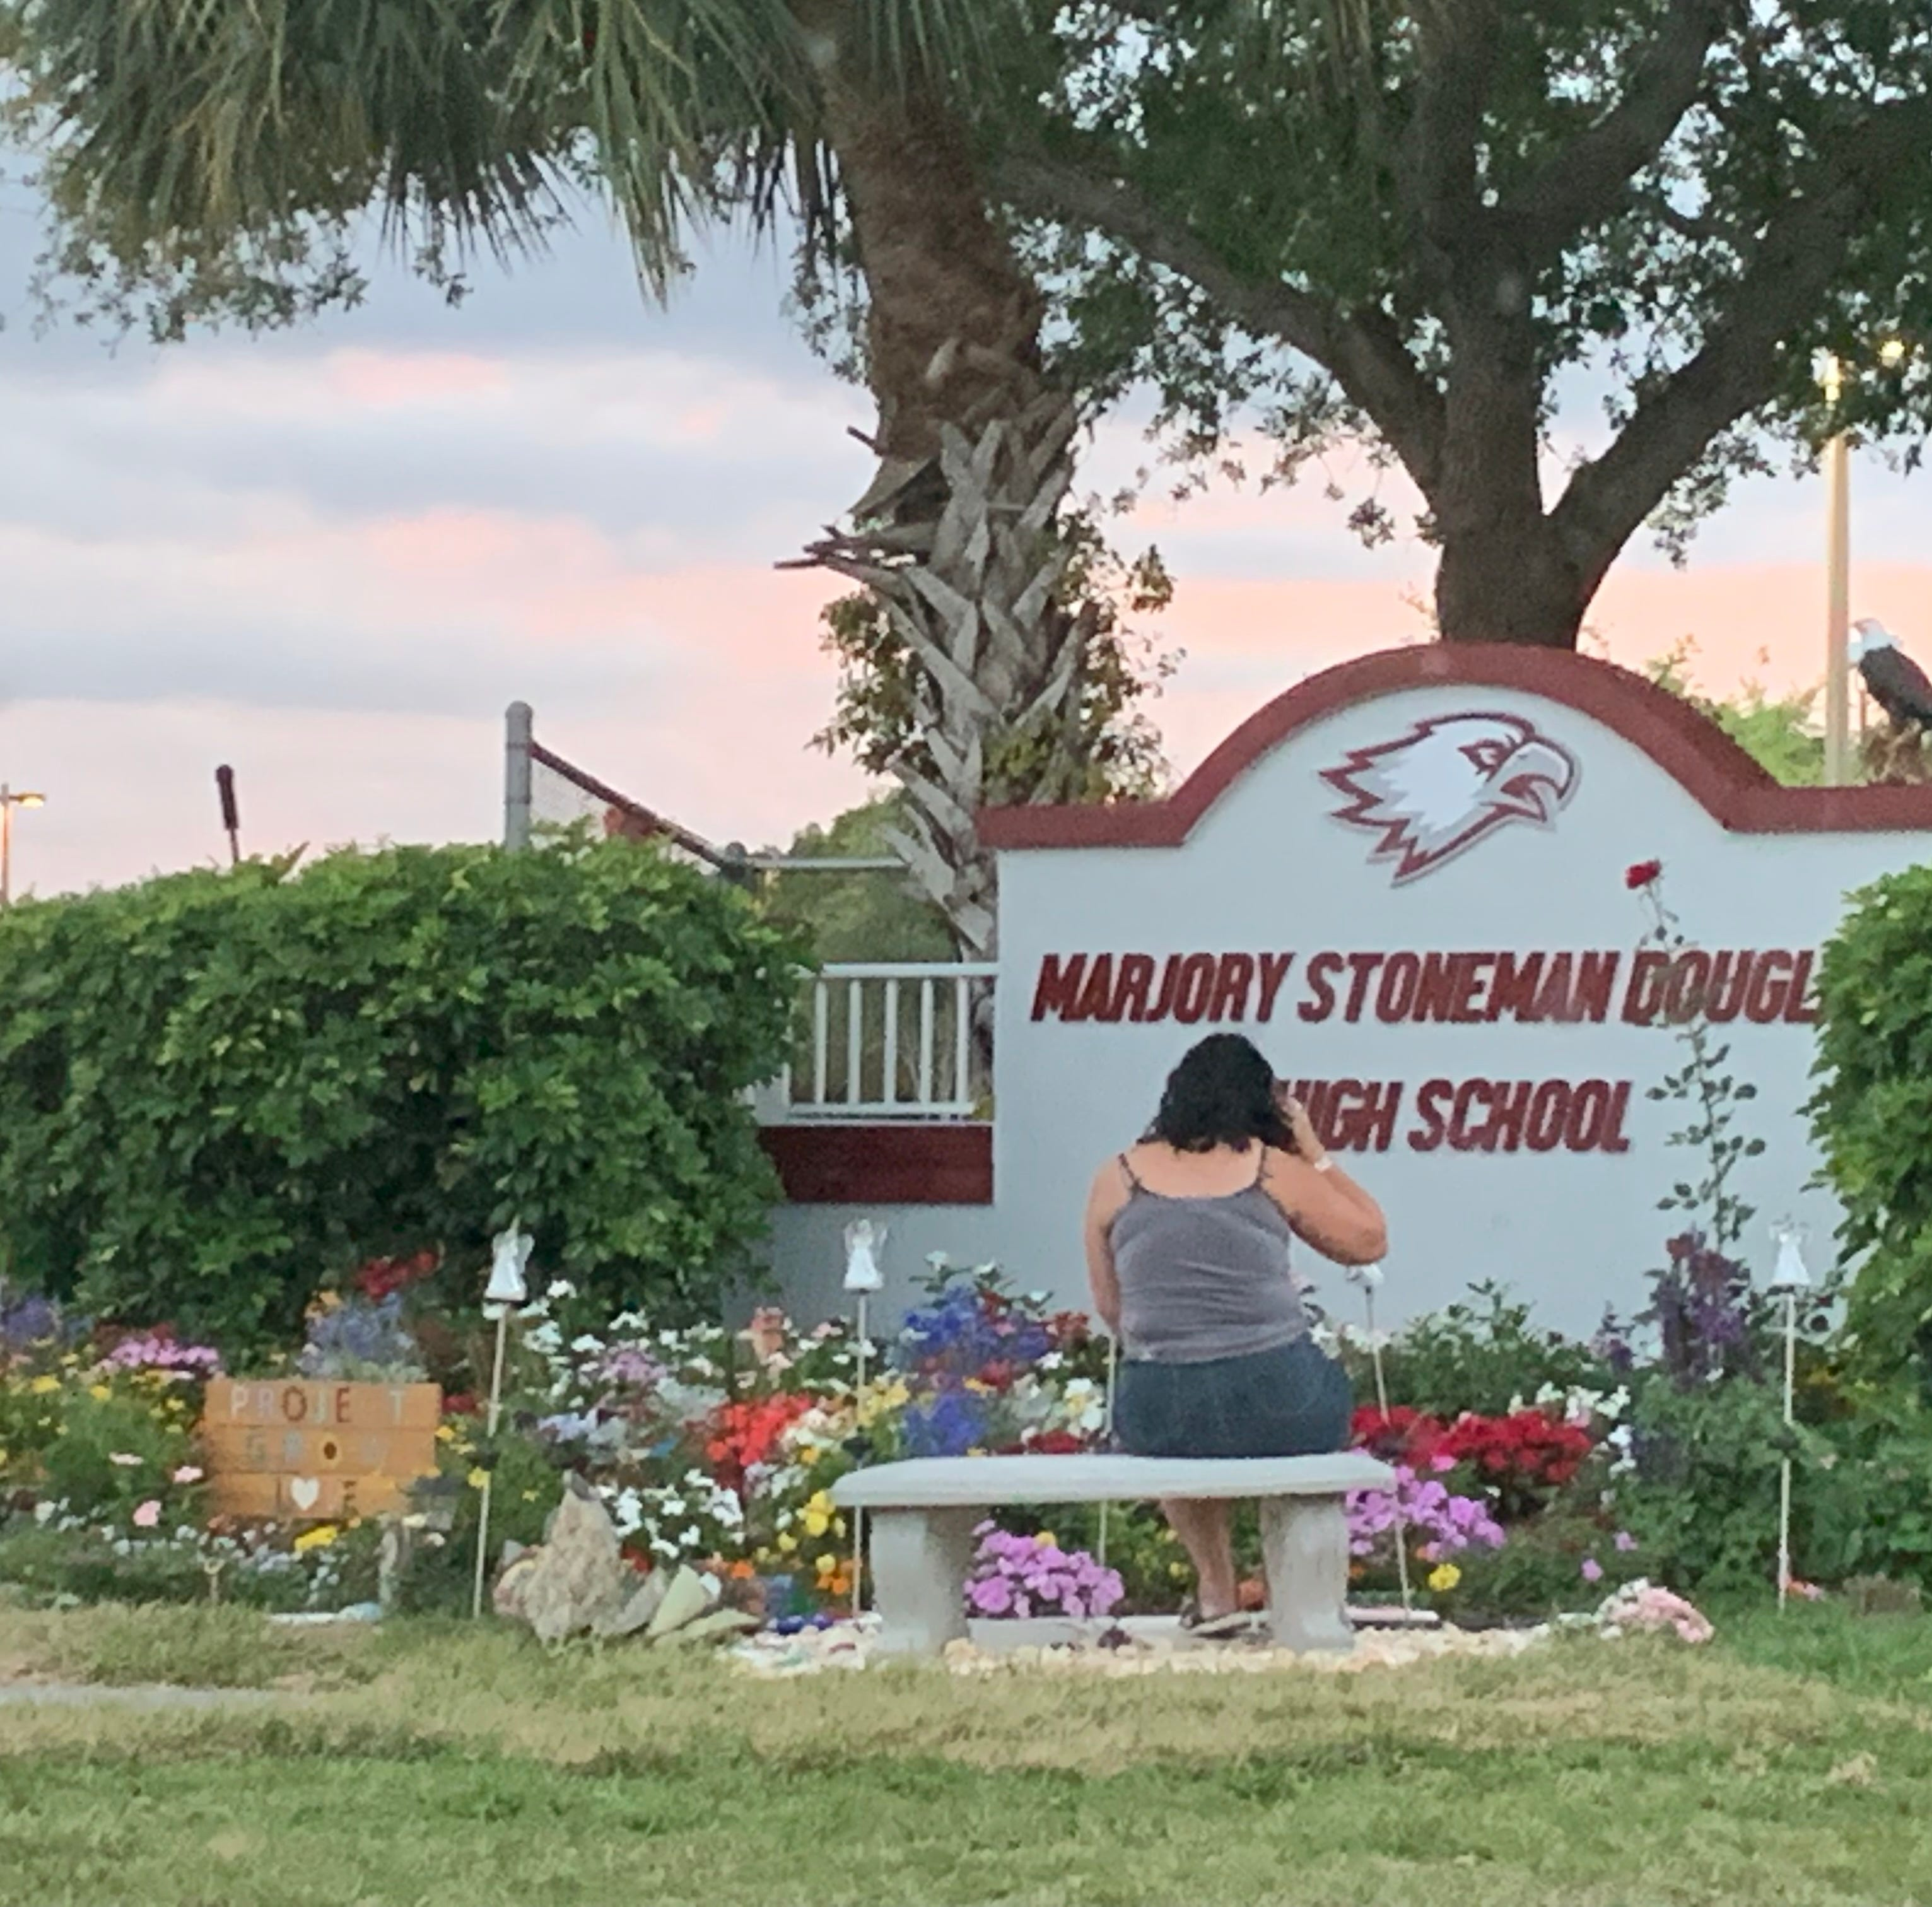 A woman sits Sunday at a sign for Marjory Stoneman Douglas High School in Parkland, Florida.